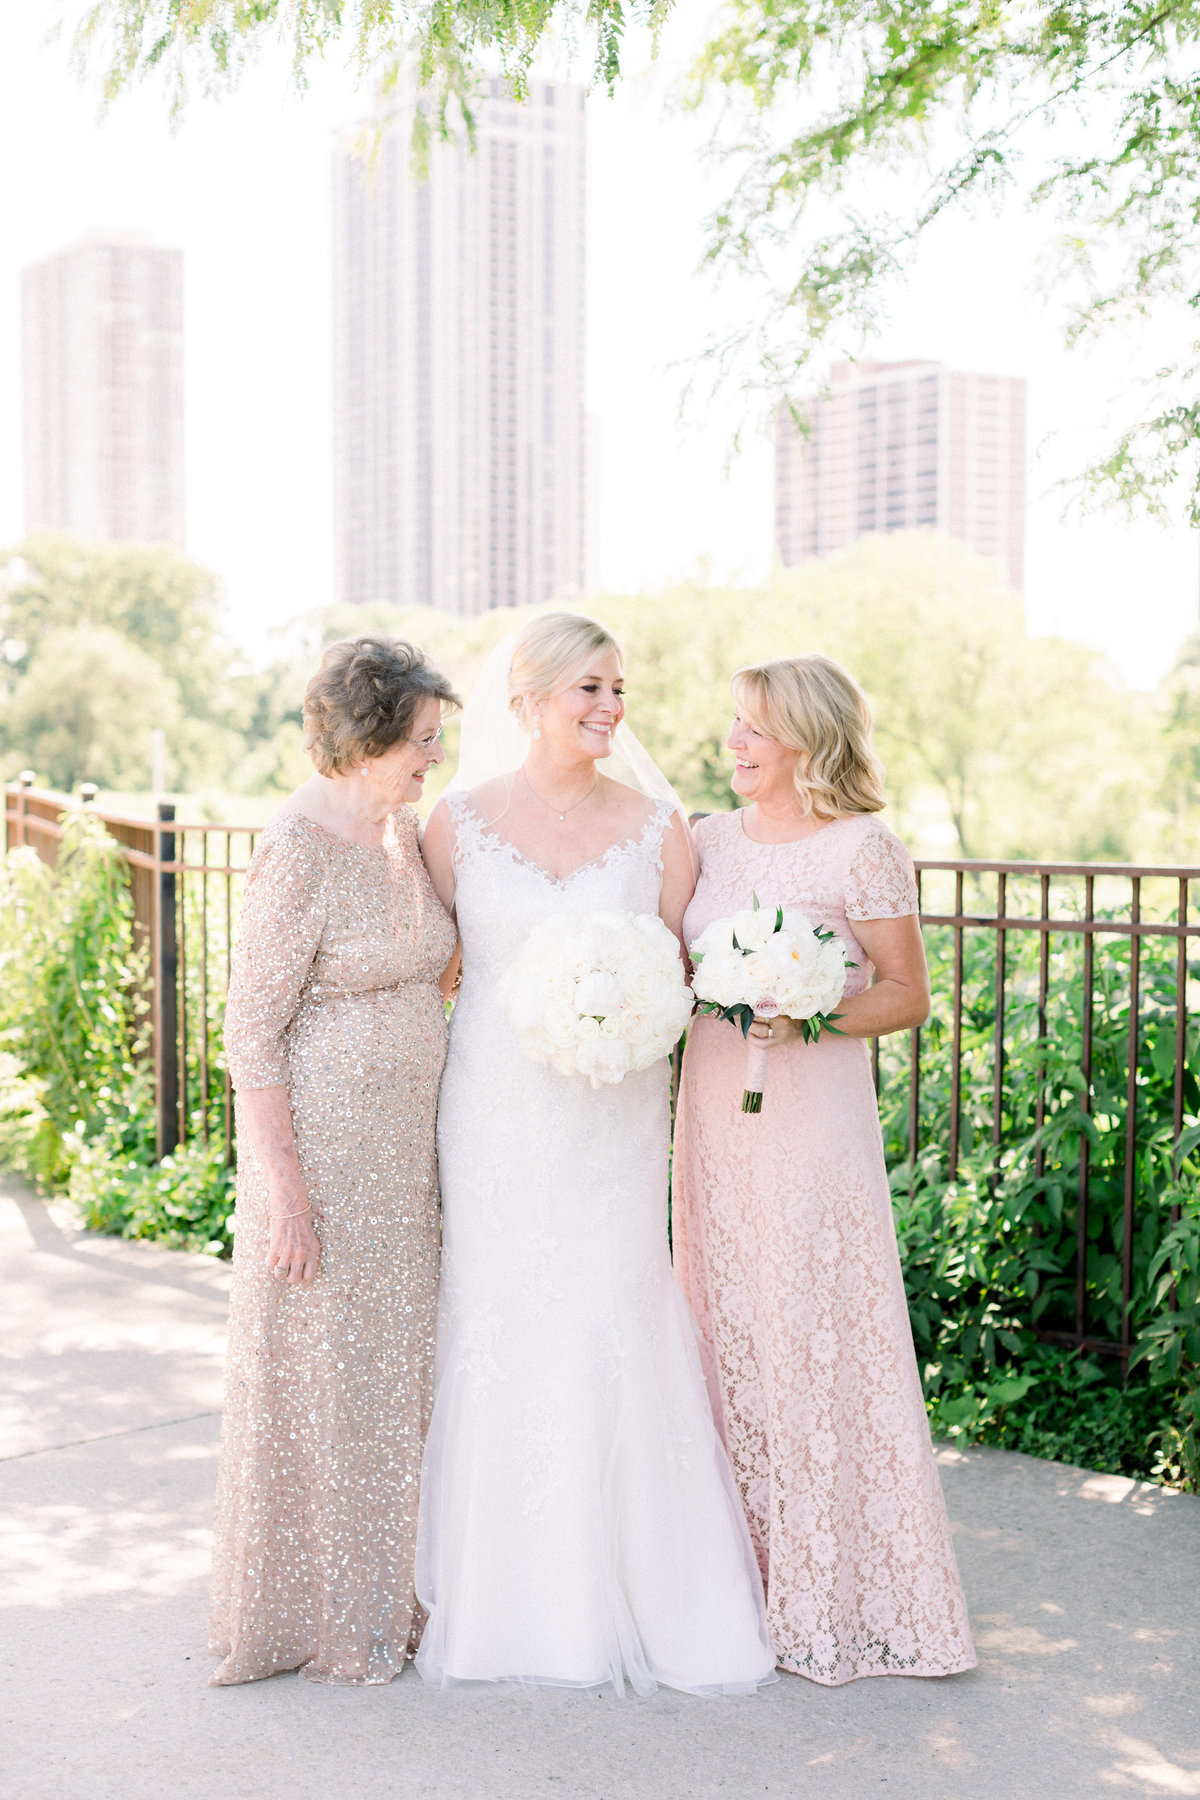 TiffaneyChildsPhotography-ChicagoWeddingPhotographer-Christine+Patrick-MundeleinAuditoriumWedding-FamilyFormals-6